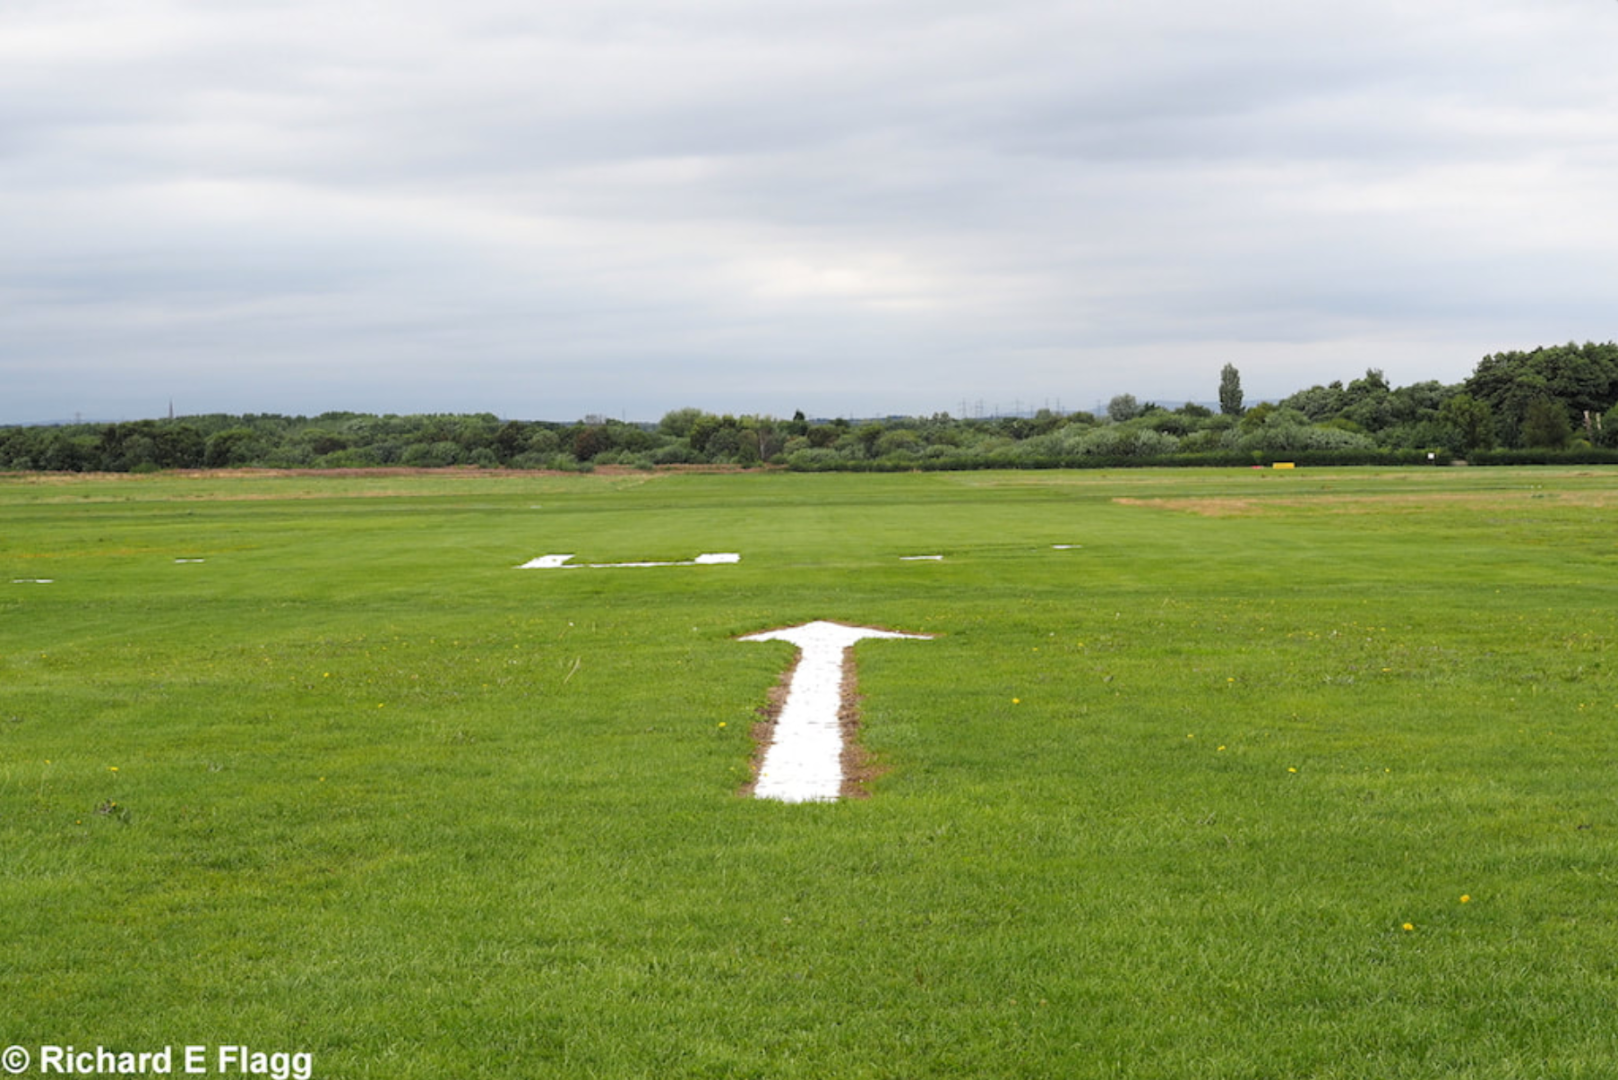 002Runway 02:20. Looking north from the runway 02 threshold - 18 August 2018.png